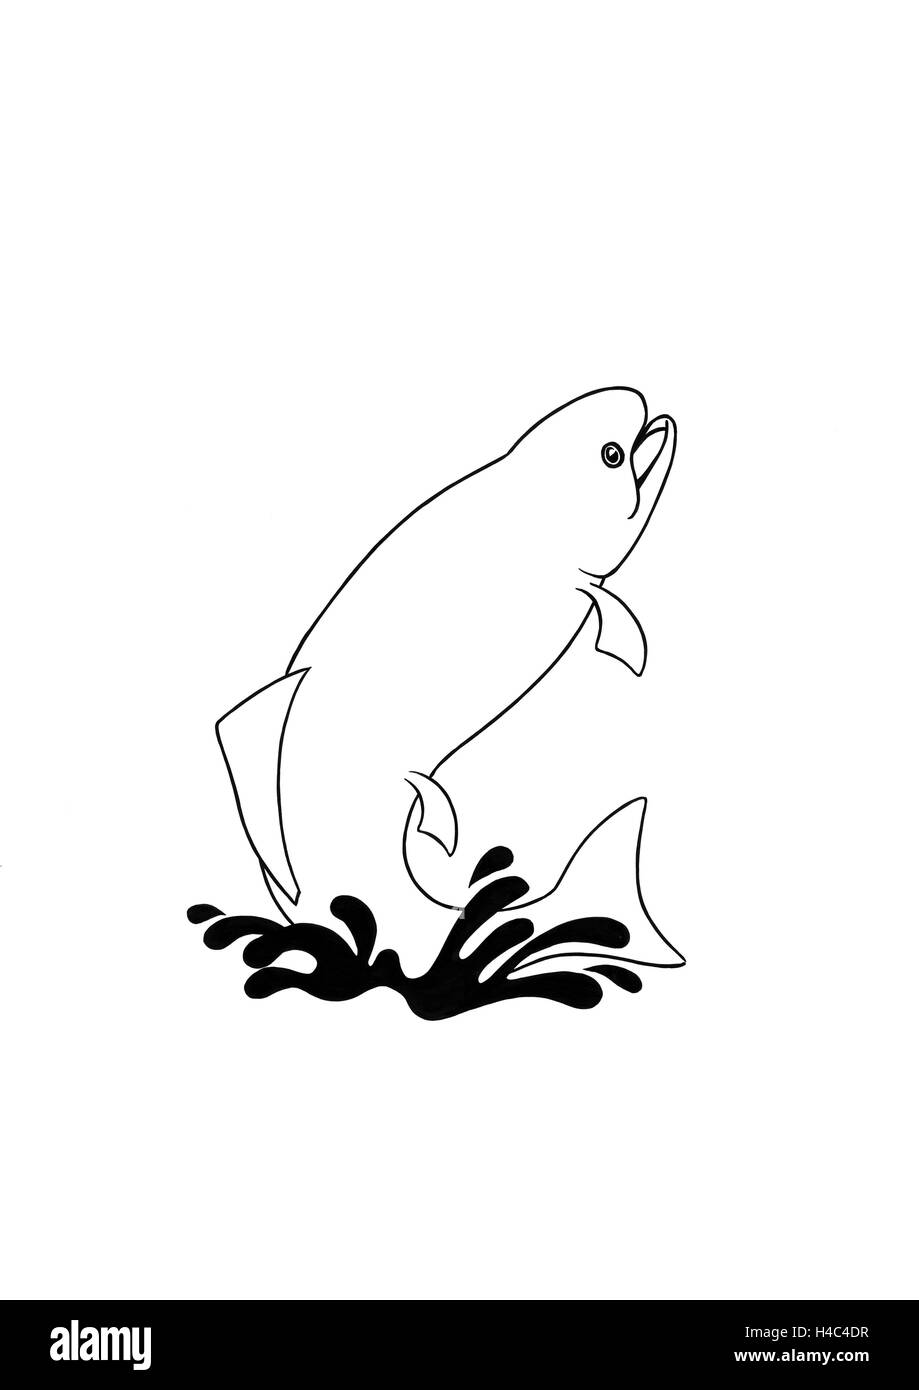 Jumping fish - Stock Image